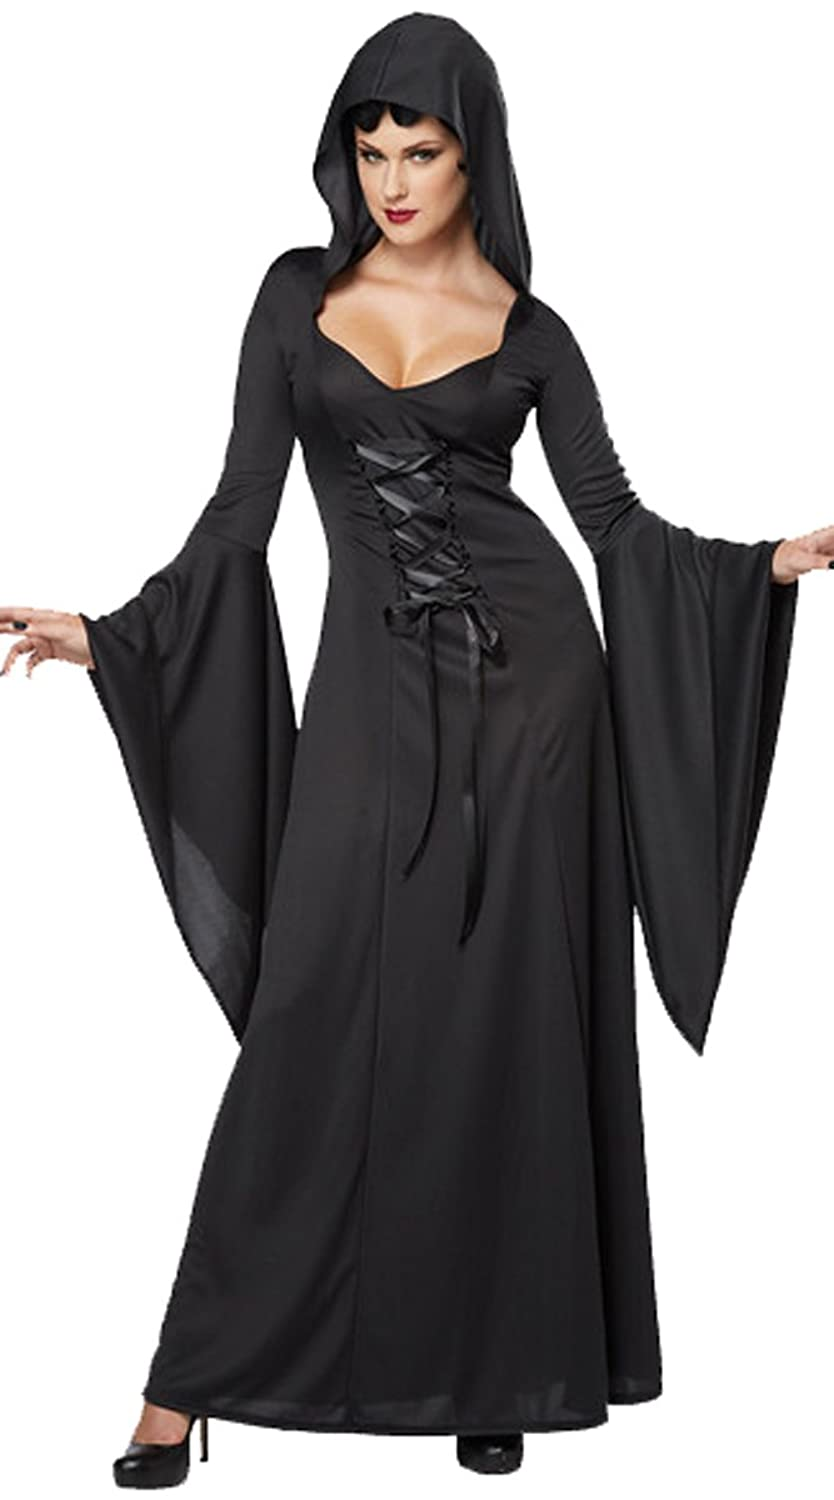 Amazon.com: COSWE Womens Hooded Robe Classic Witch Long Dress ...